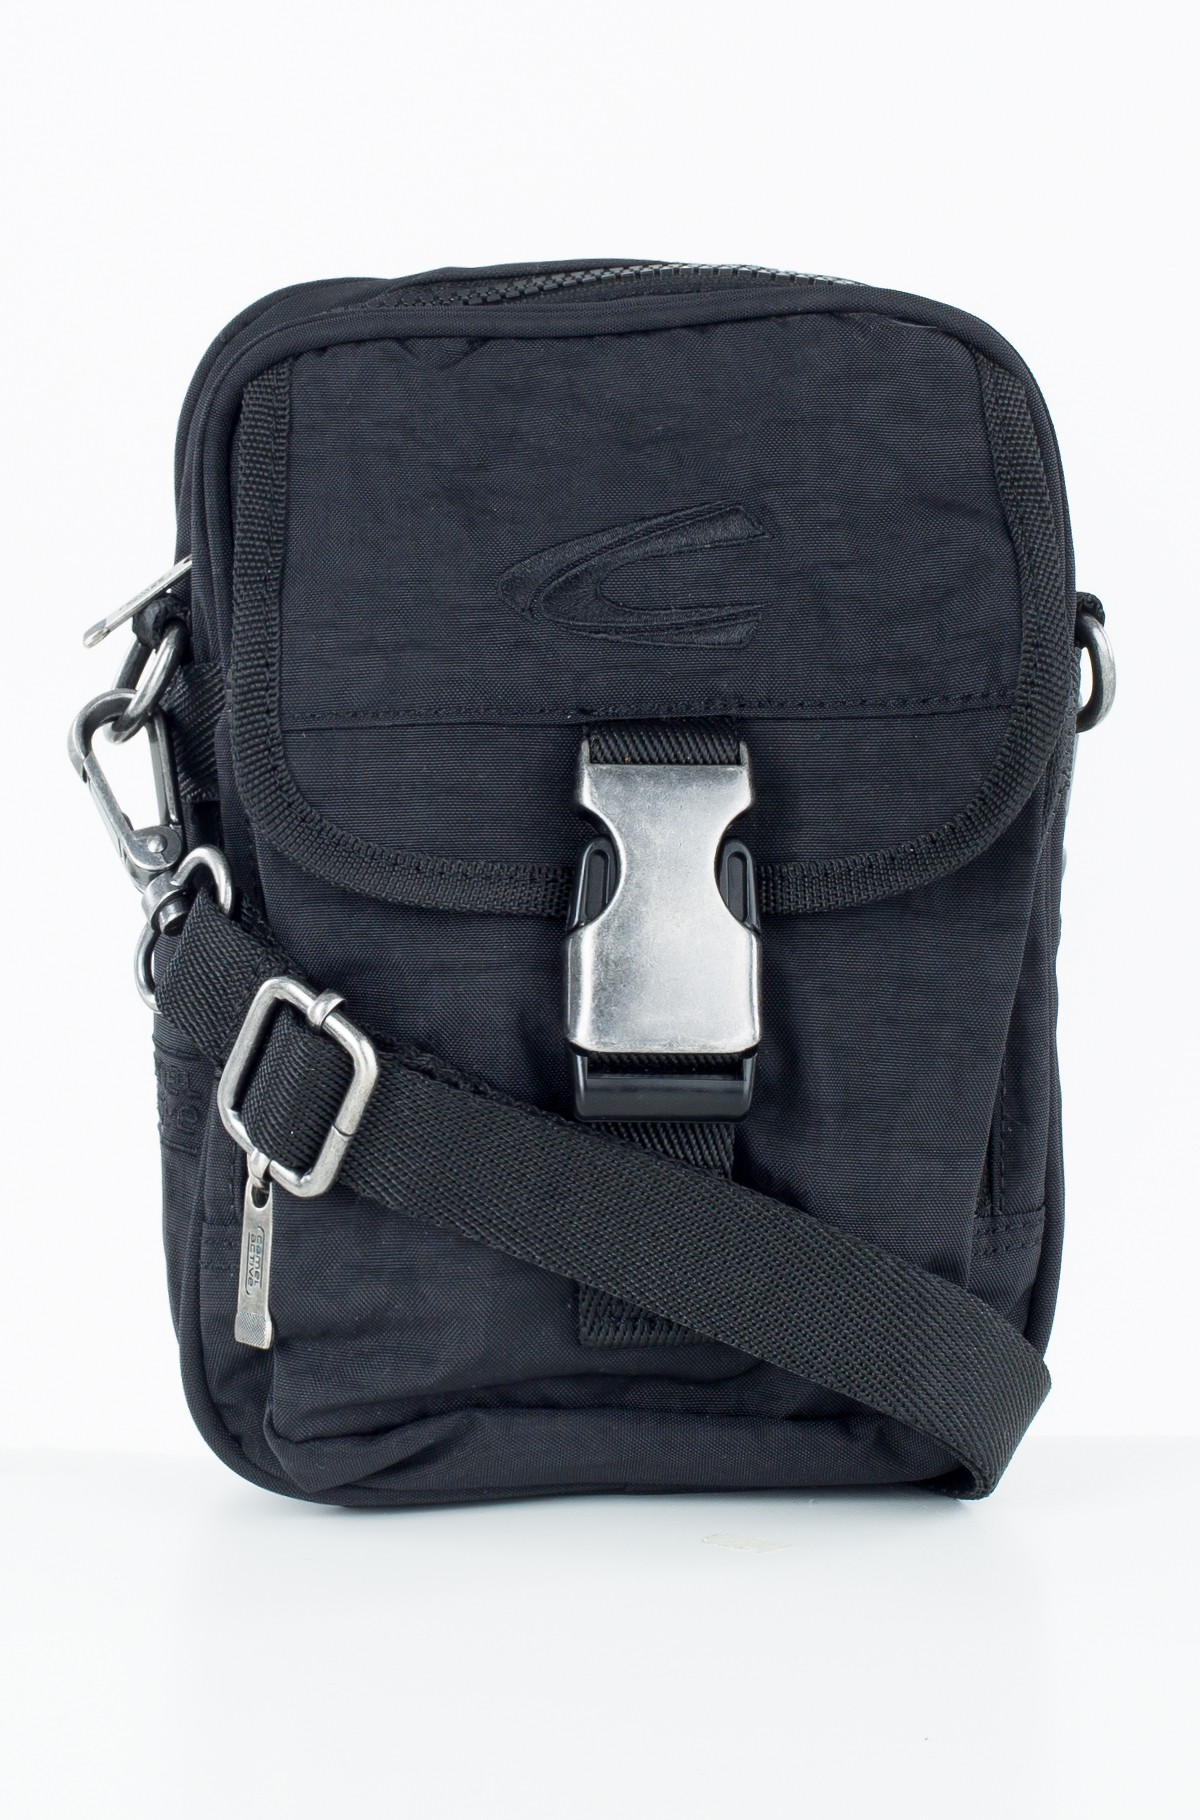 Shoulder bag B00/913-full-1